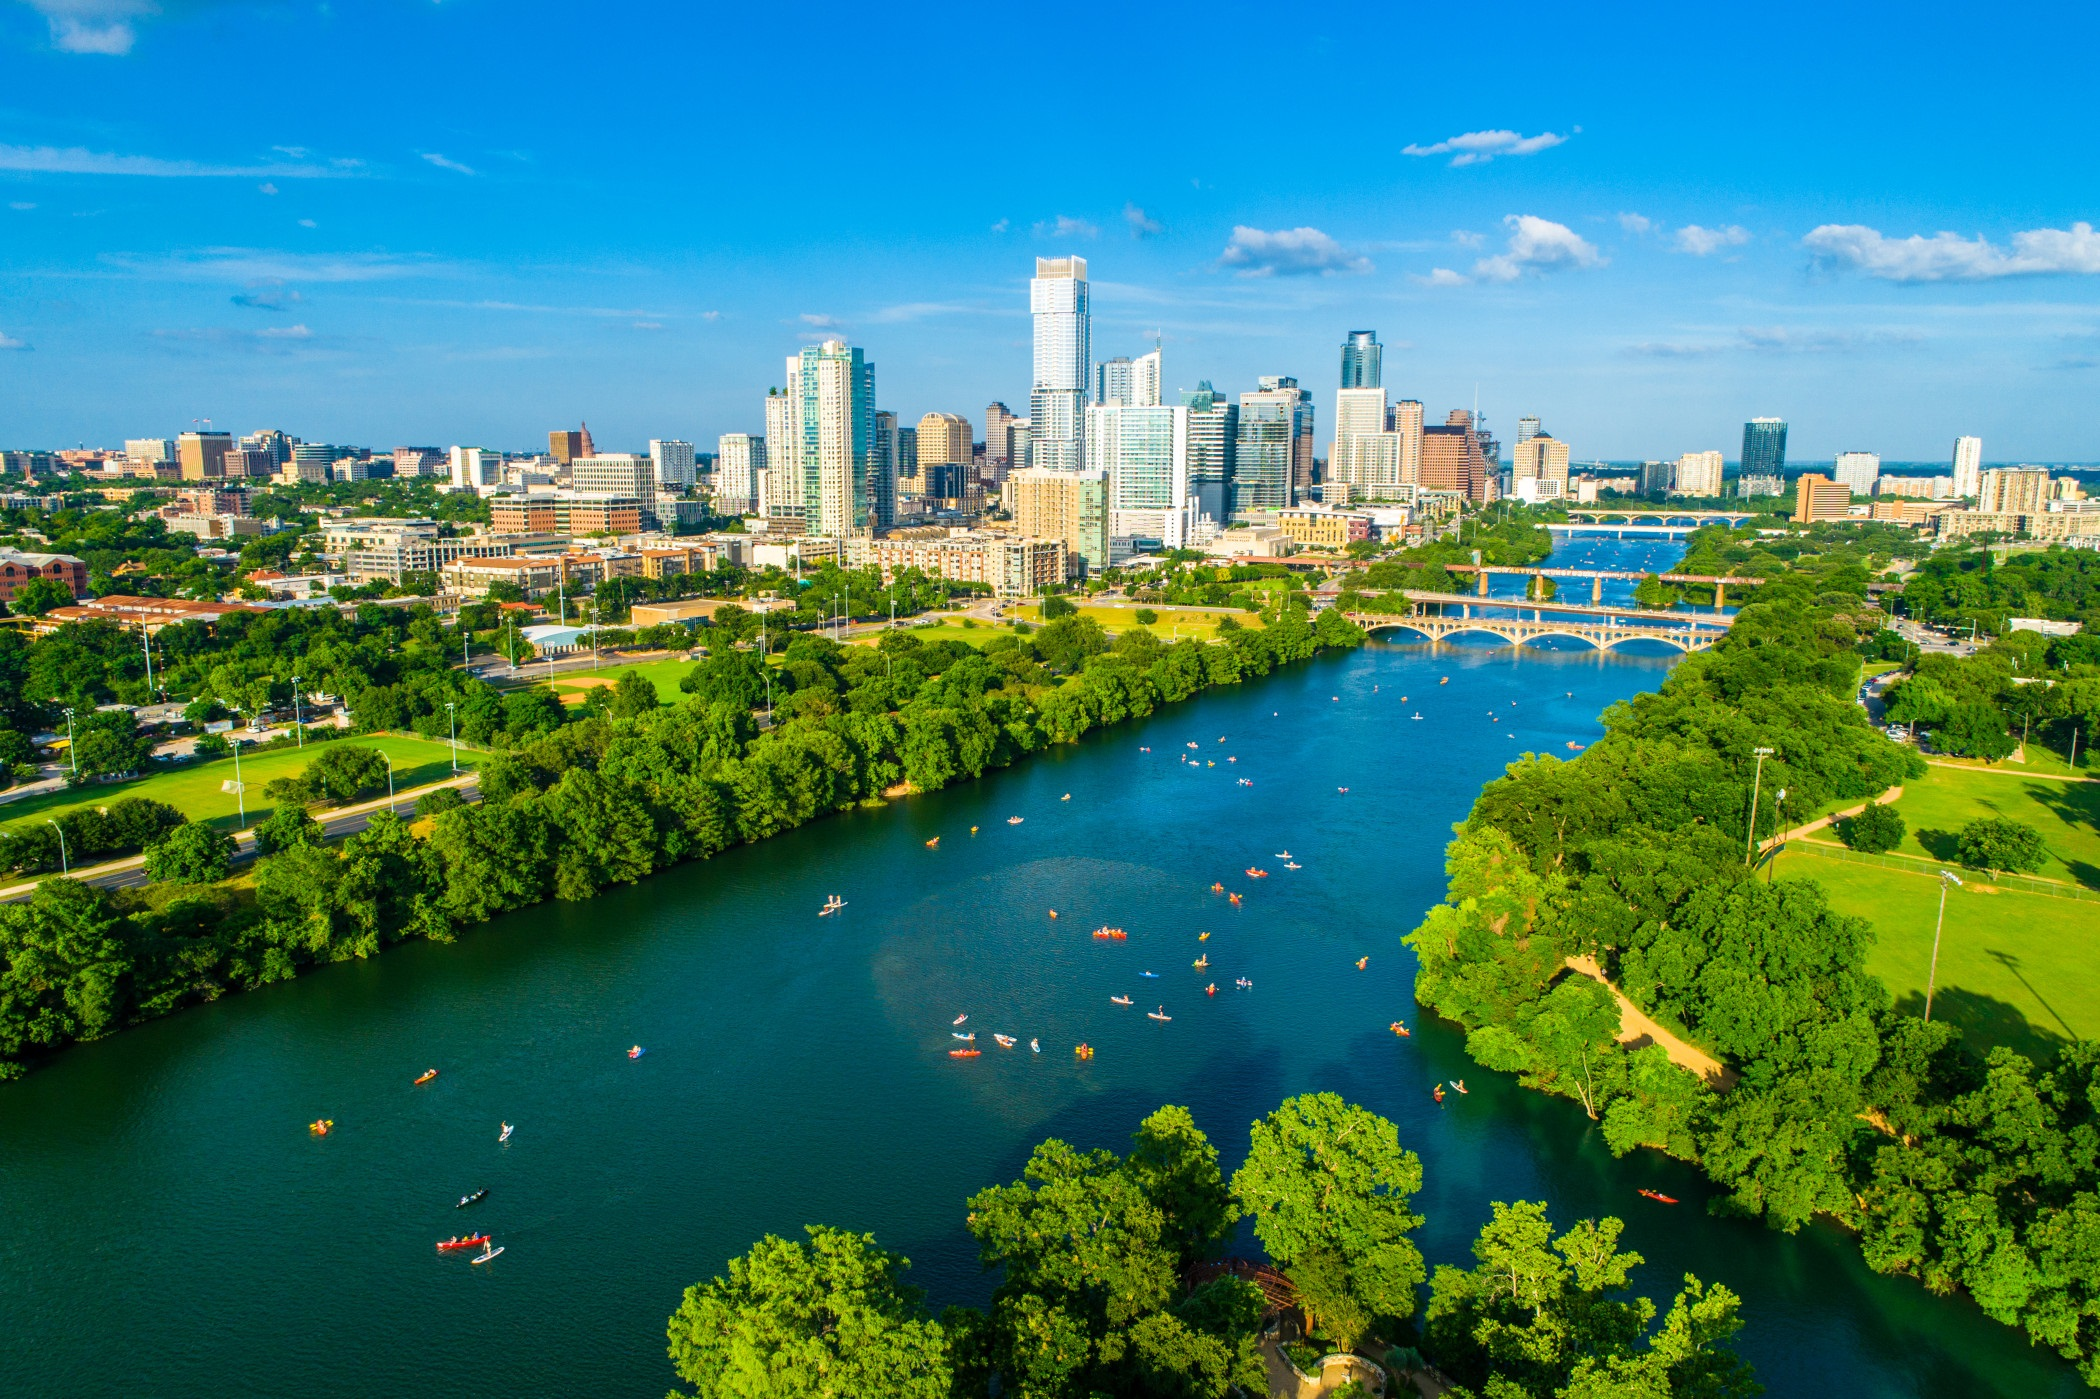 With apartment rents up more than 4% so far this year, Austin is one of the biggest comeback stories in the country. (Getty Images)